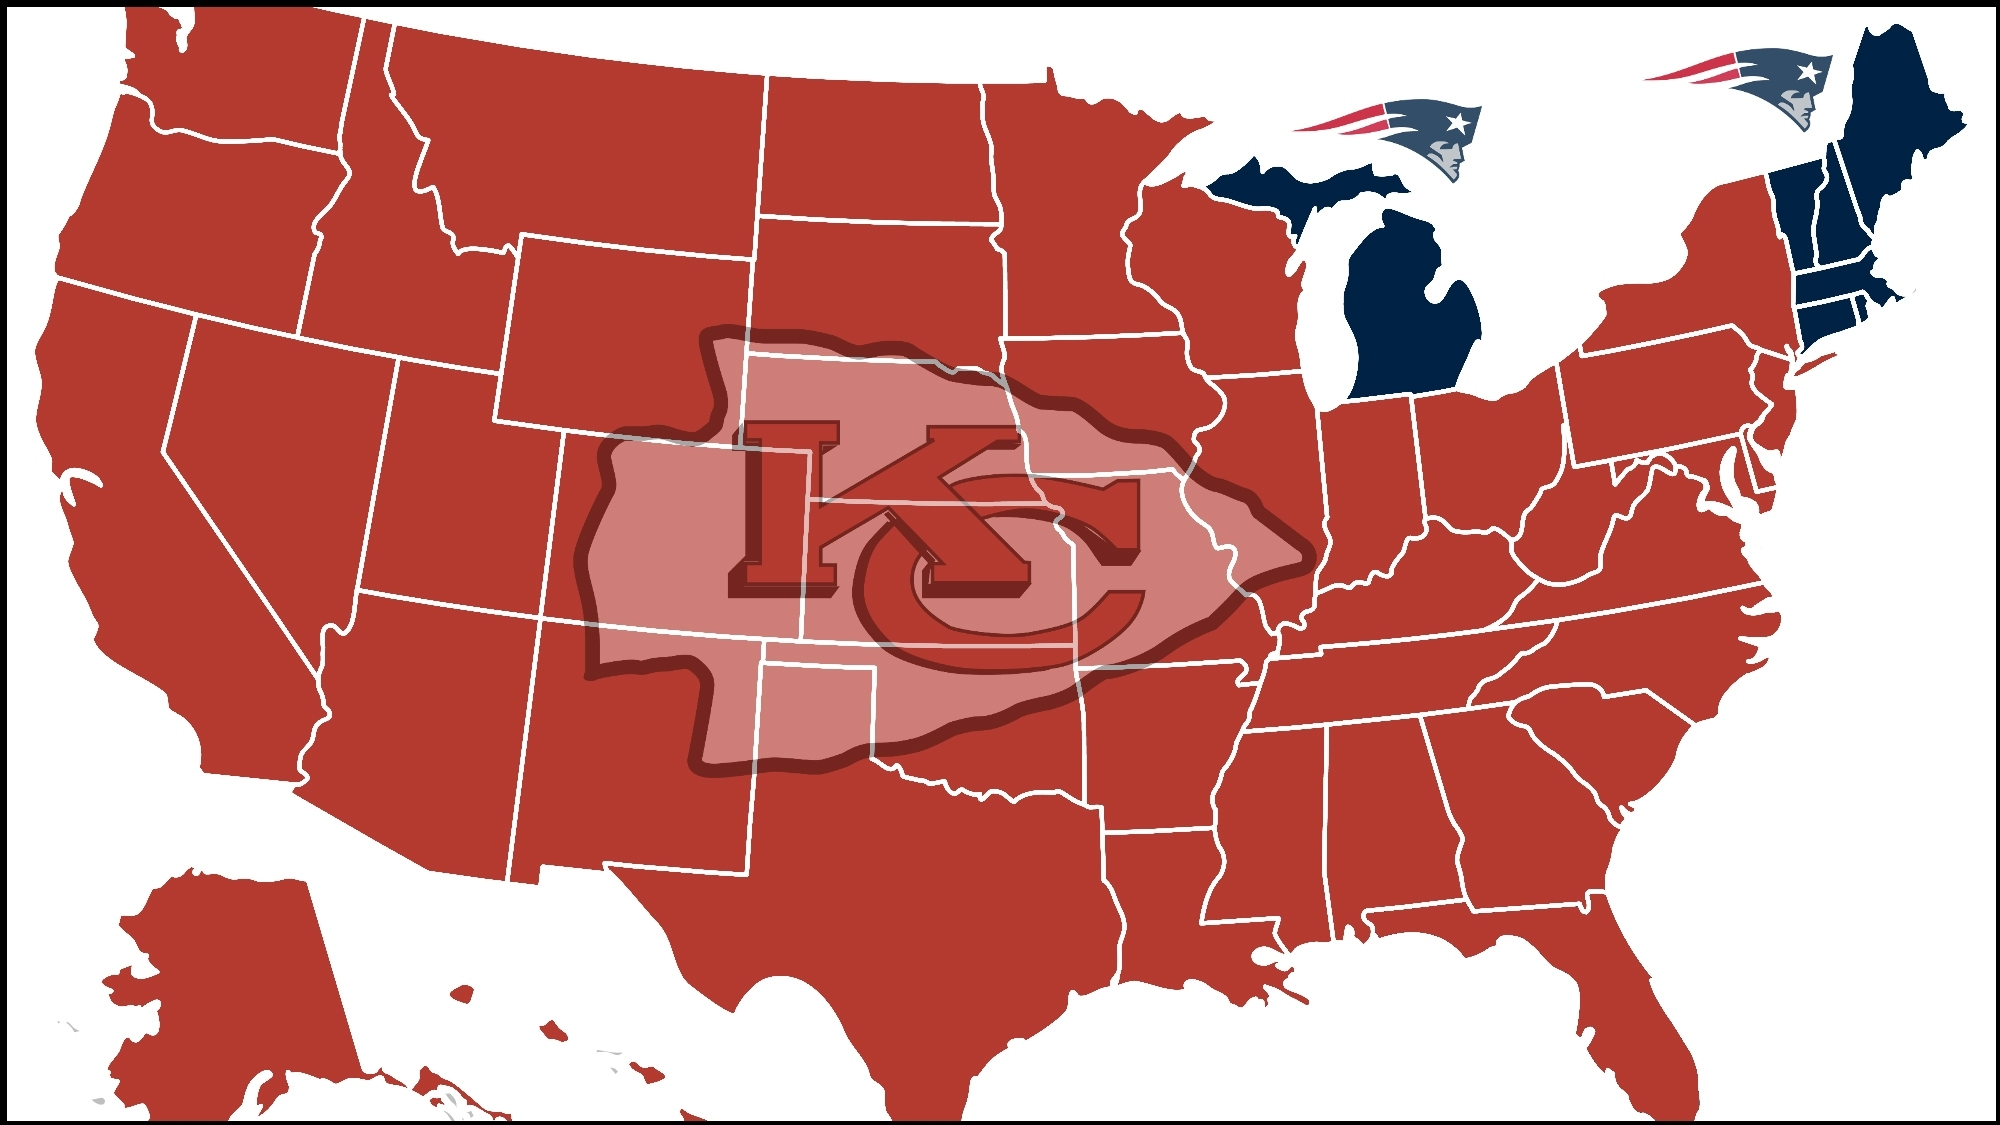 Almost Entire Country Will Be Rooting Against Patriots In pertaining to Super Bowl 53 Rooting Map